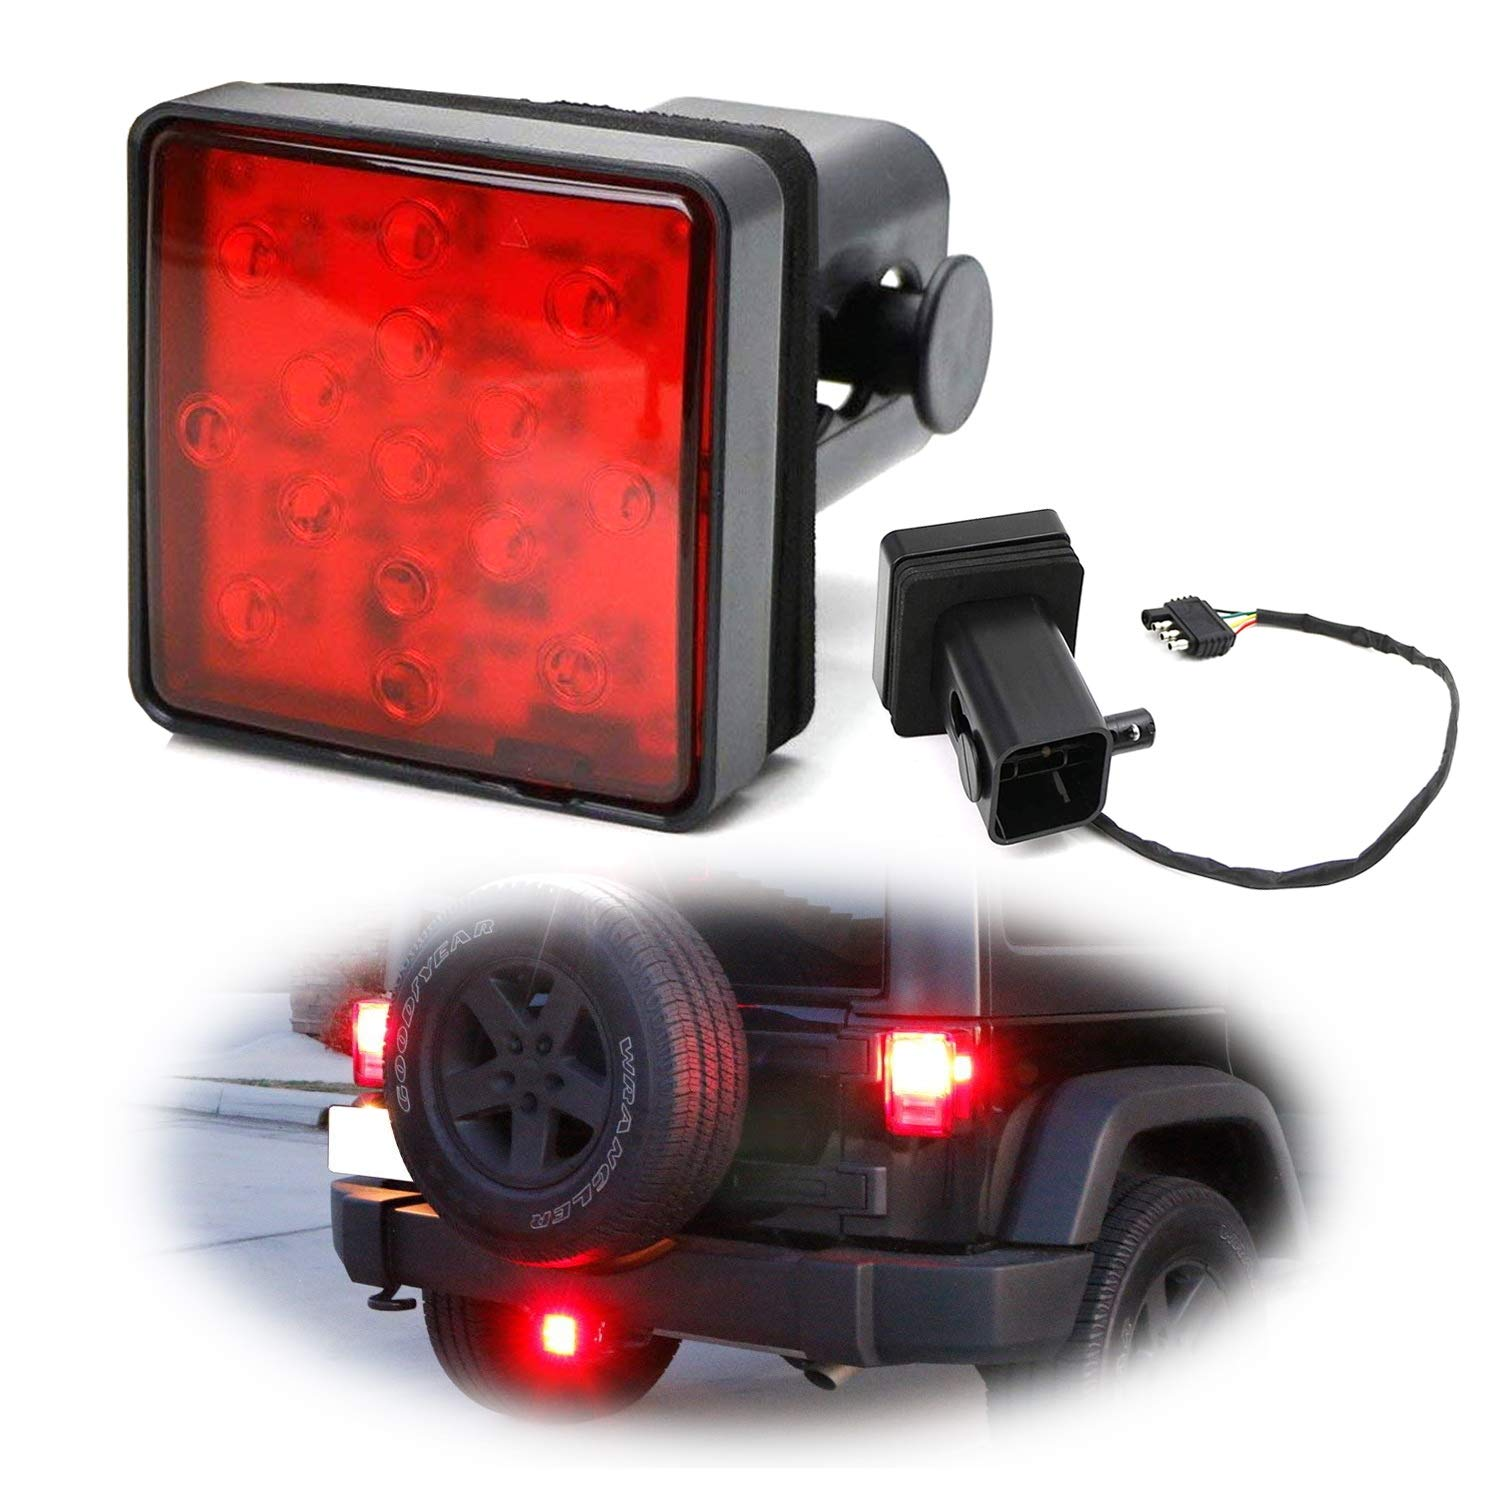 Ijdmtoy Red Lens Led Tail Brake Light For Truck Suv Troubleshooting 4 And 5way Wiring Installations Etrailercom Trailer Class 3 5 2 Inch Towing Hitch Receiver Powered By 15 Super Bright Bulbs